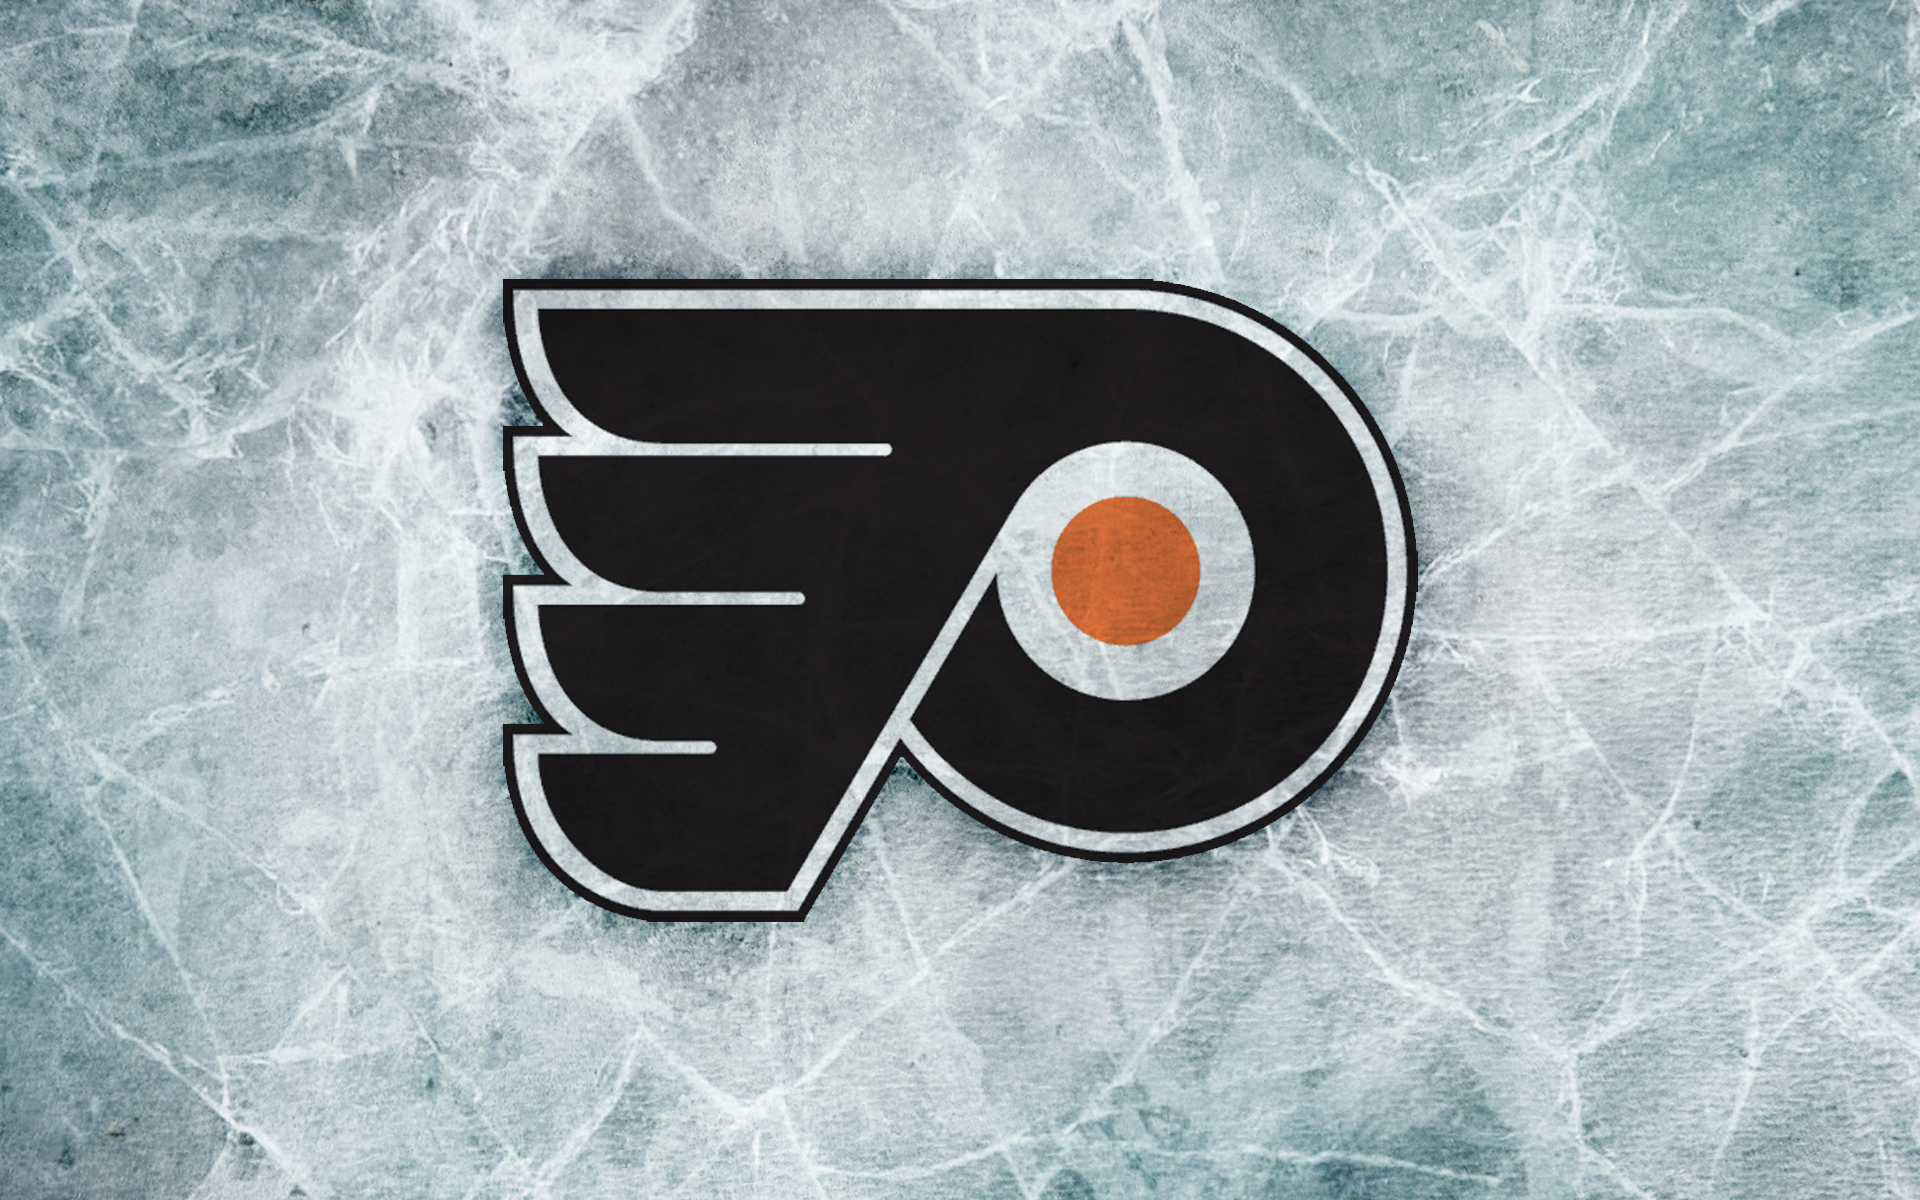 AAA MID-ATLANTIC AND PHILADELPHIA FLYERS TO HOST POP-UP POND HOCKEY EVENT AT WILMINGTON ICE RINK